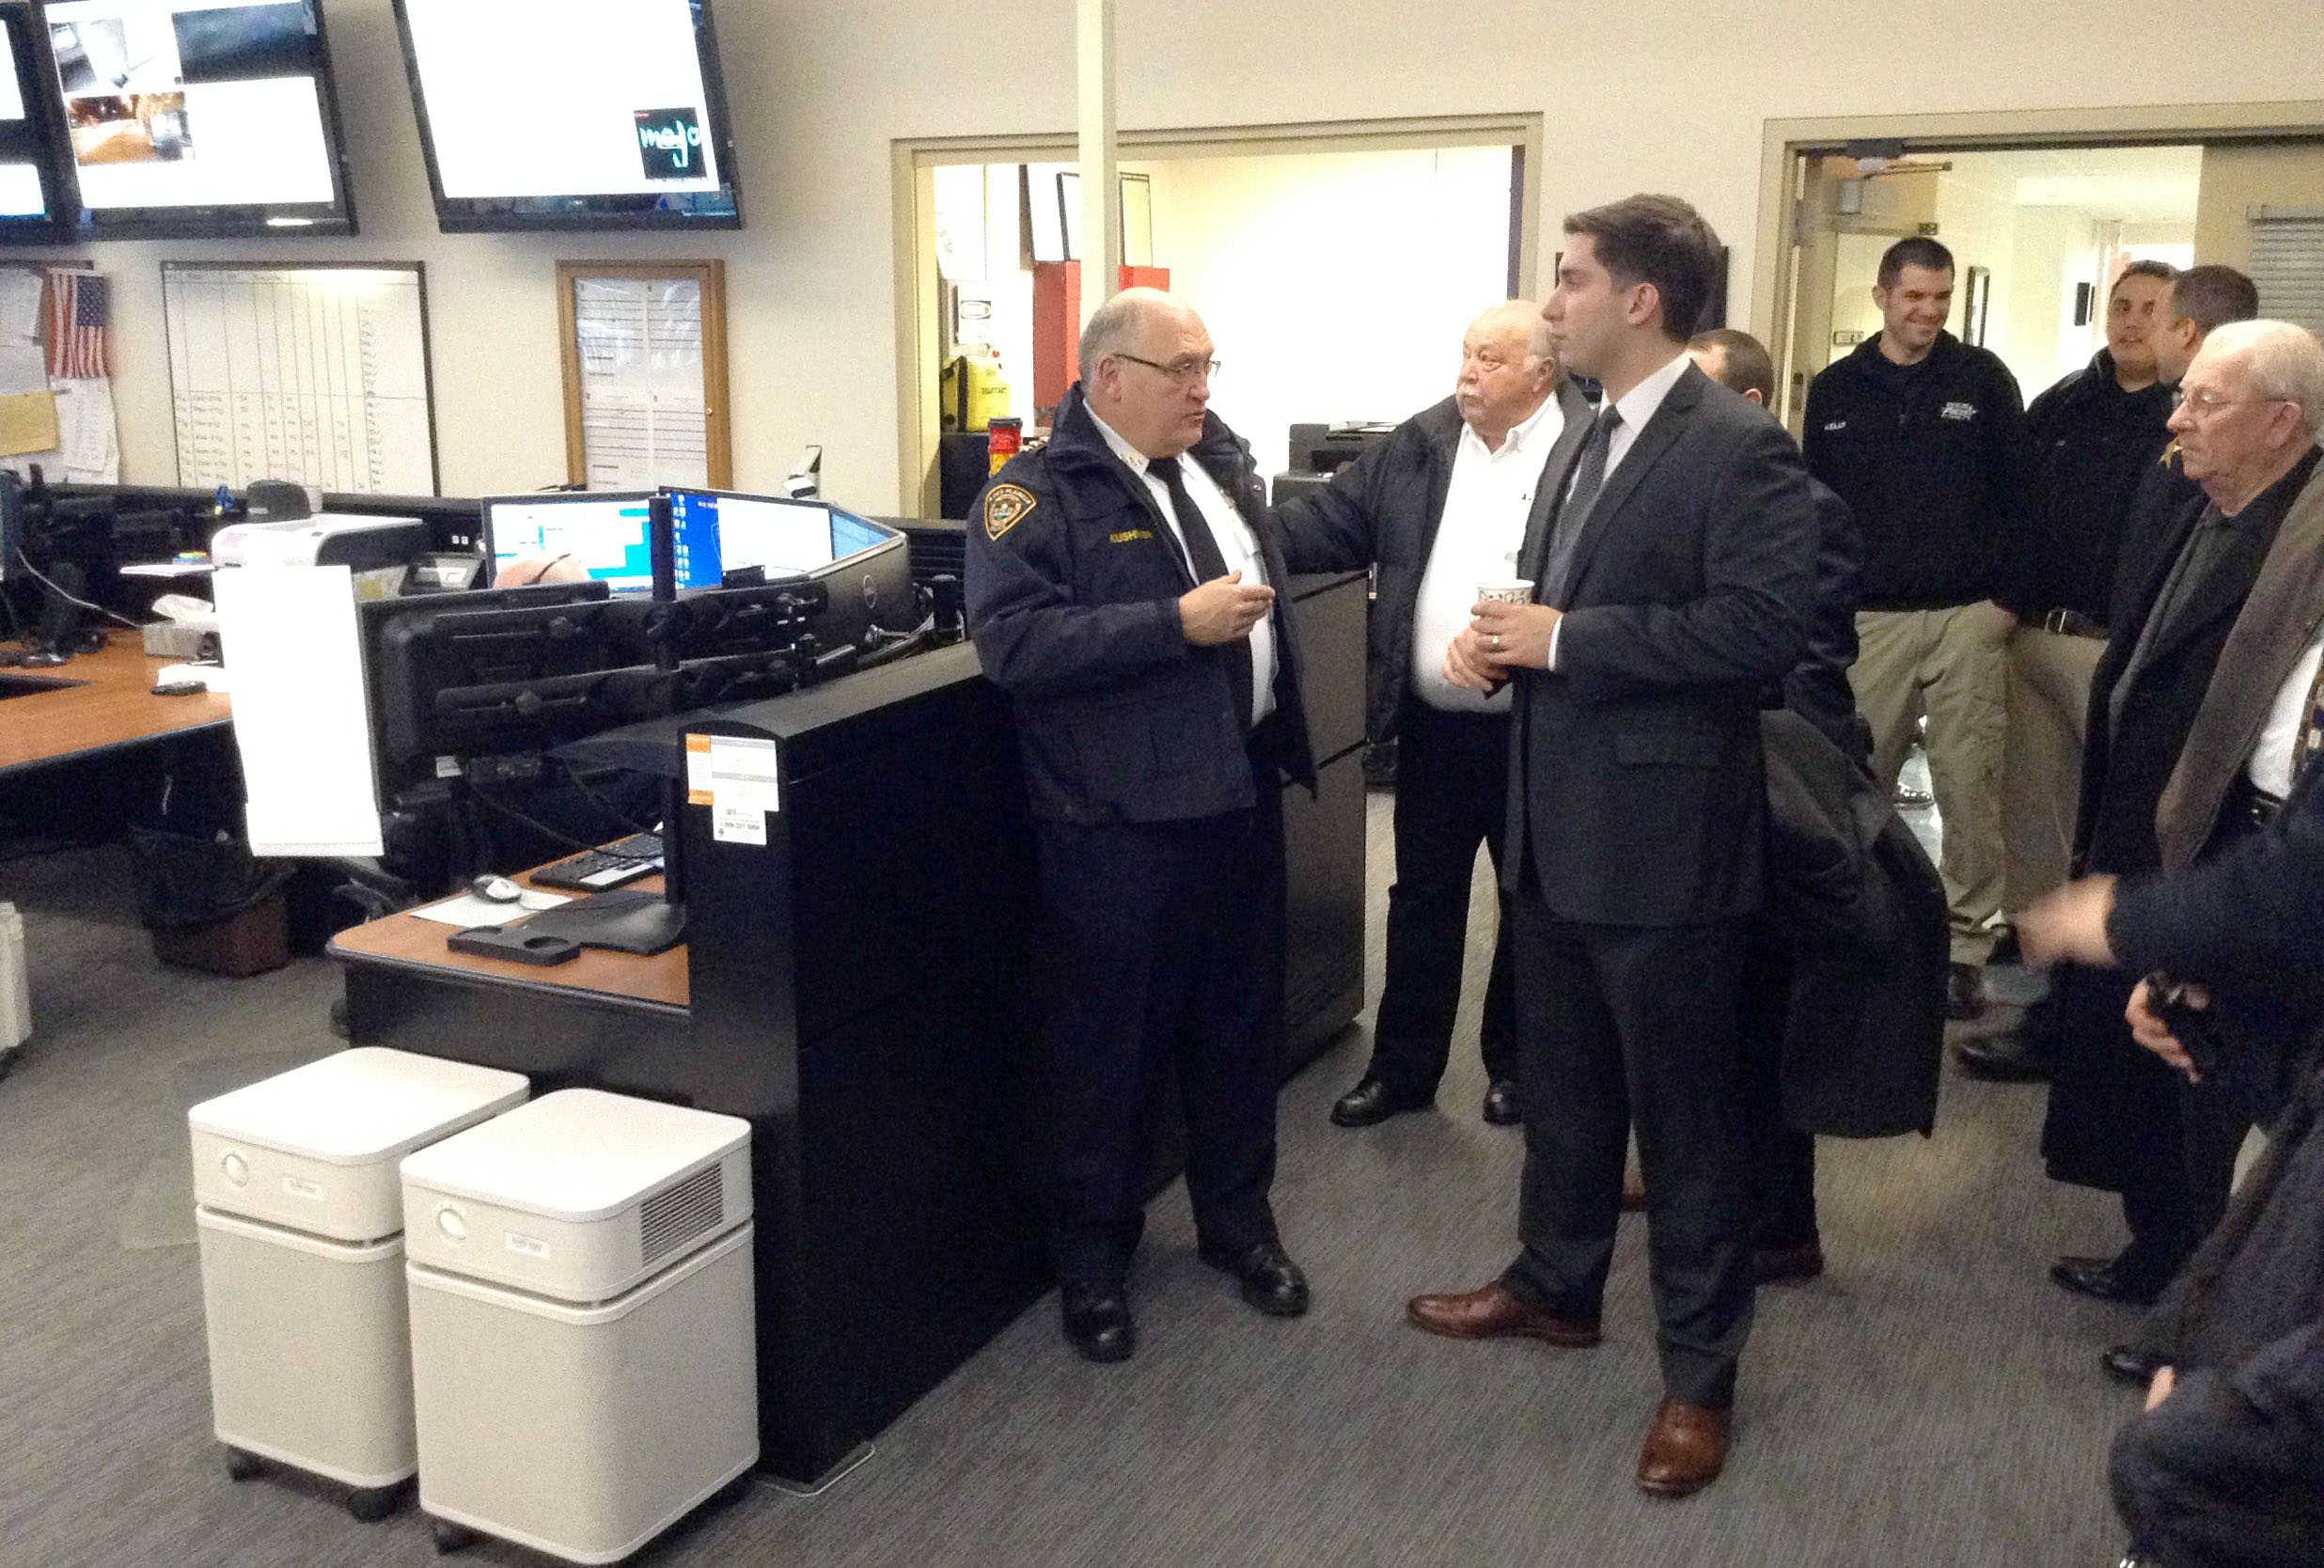 Des Plaines leaders tour Wheeling's 911 center